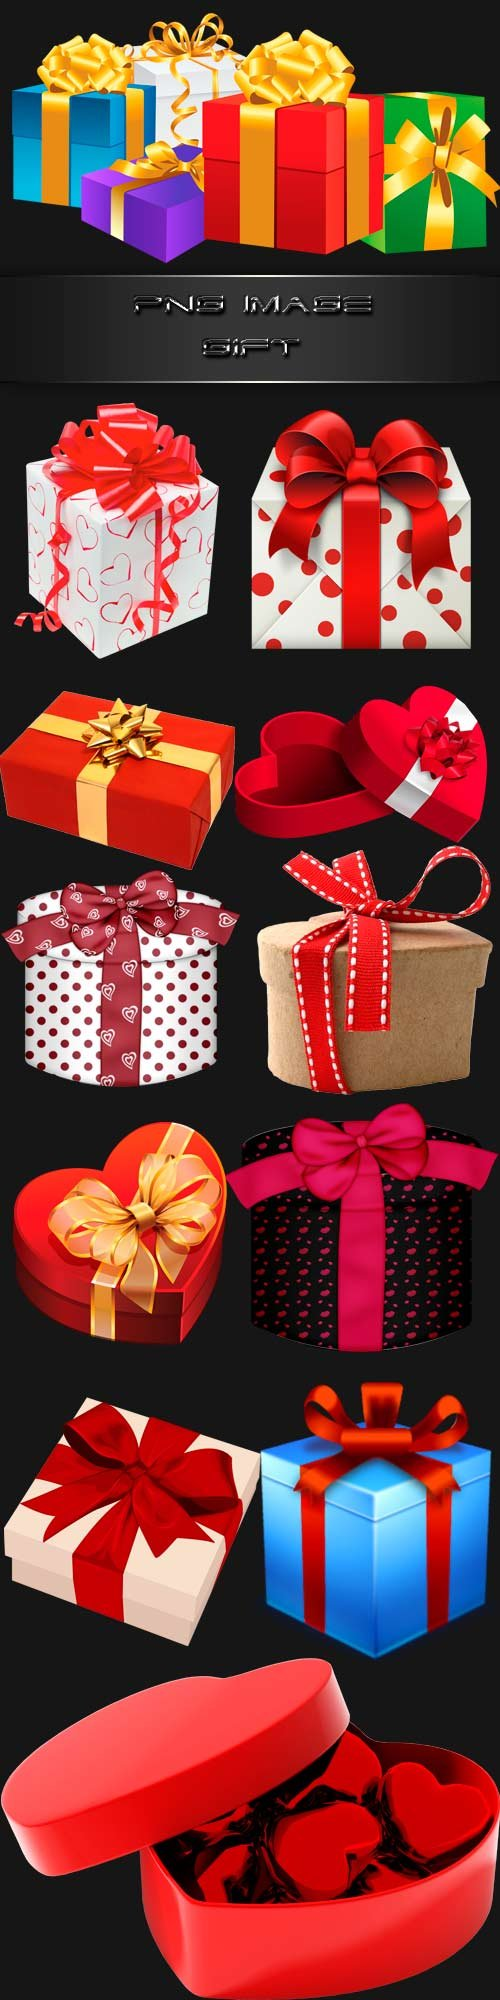 PNG clipart Gift